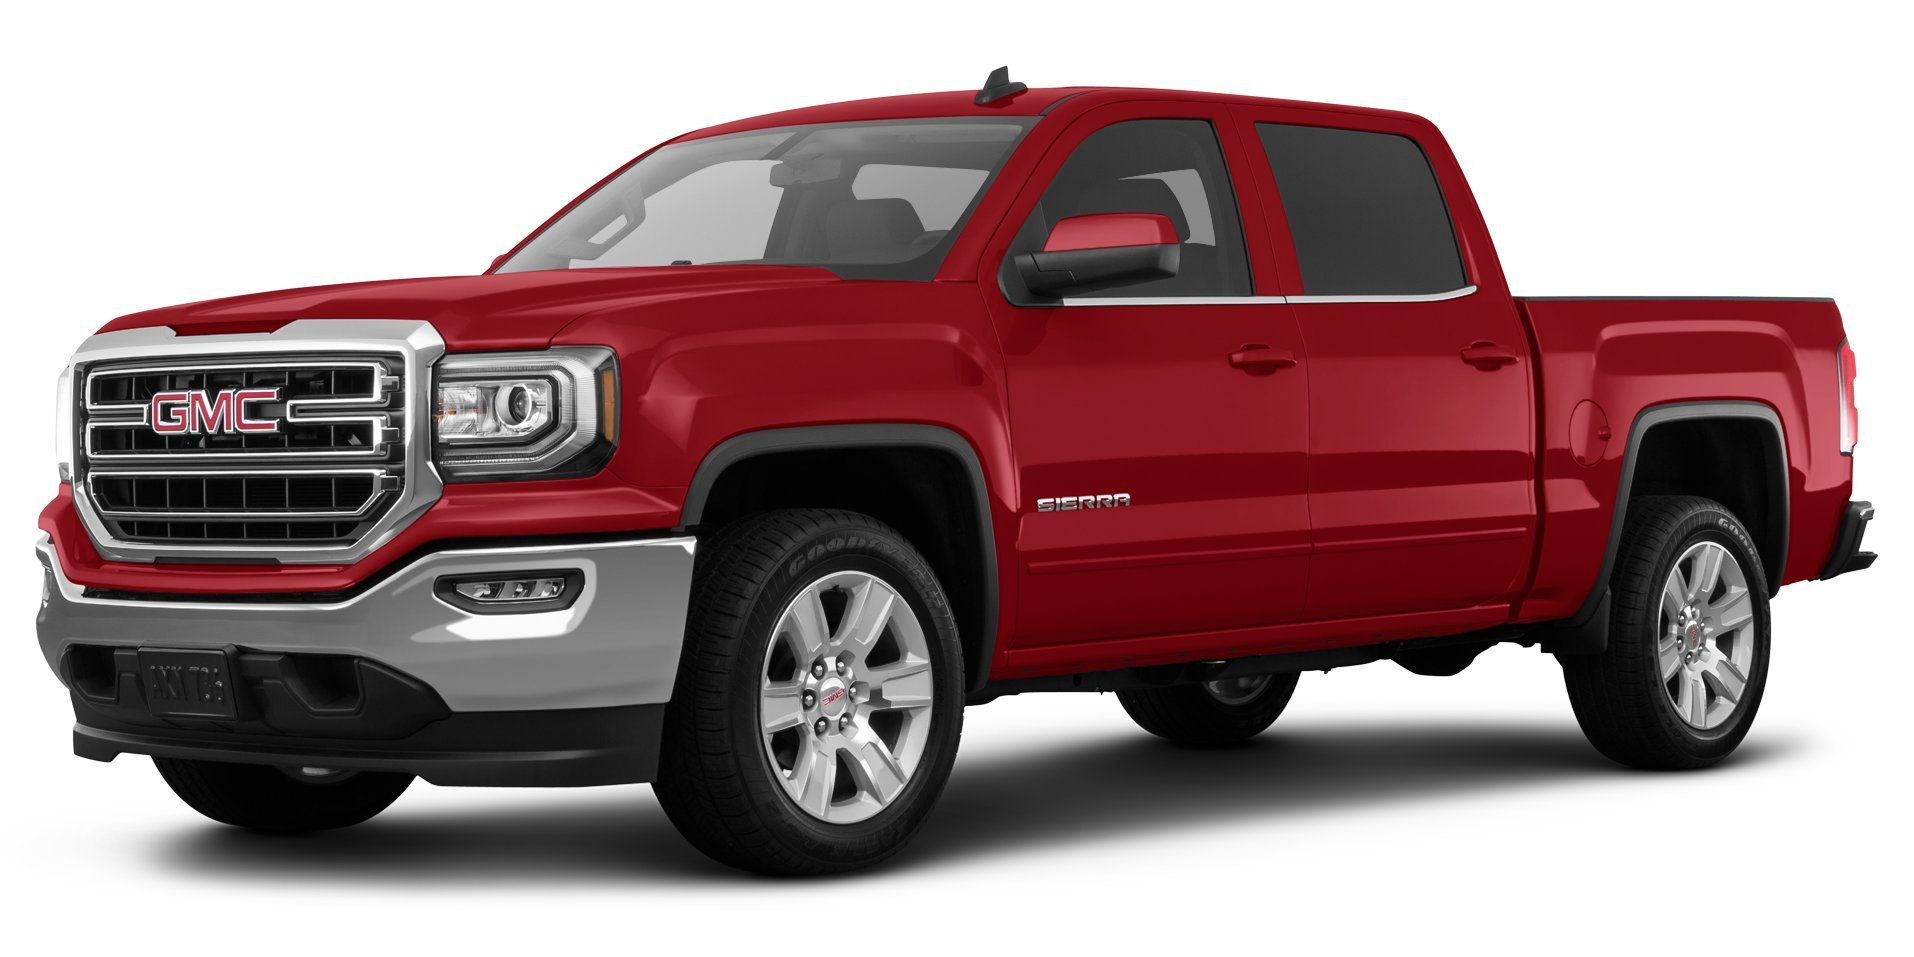 2016 gmc sierra 1500 reviews images and. Black Bedroom Furniture Sets. Home Design Ideas